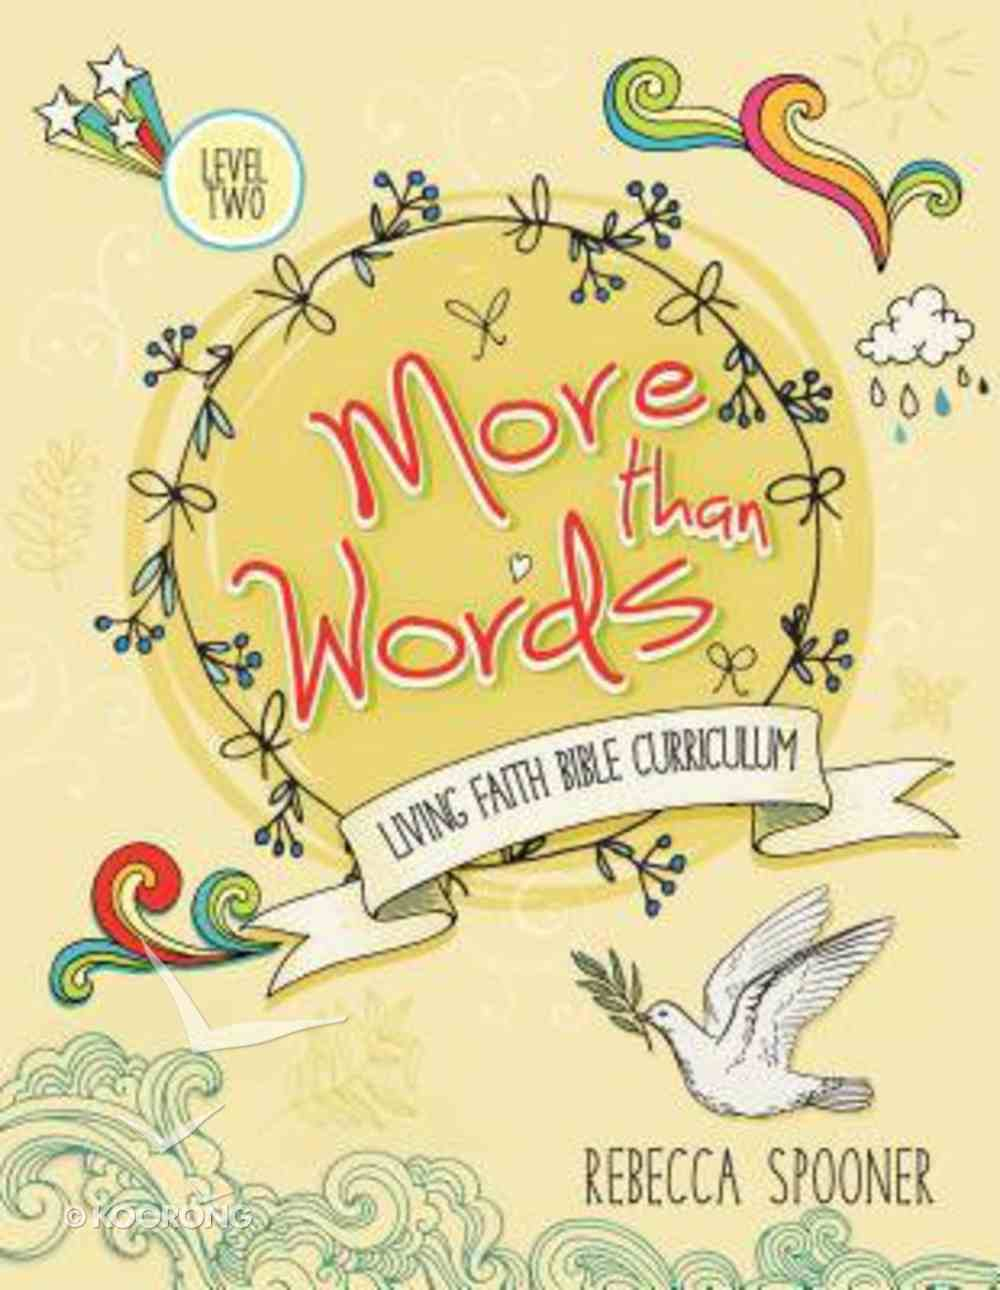 More Than Words (Level 2 For Ages 8-10) (Living Faith Bible Curriculum Series) Paperback